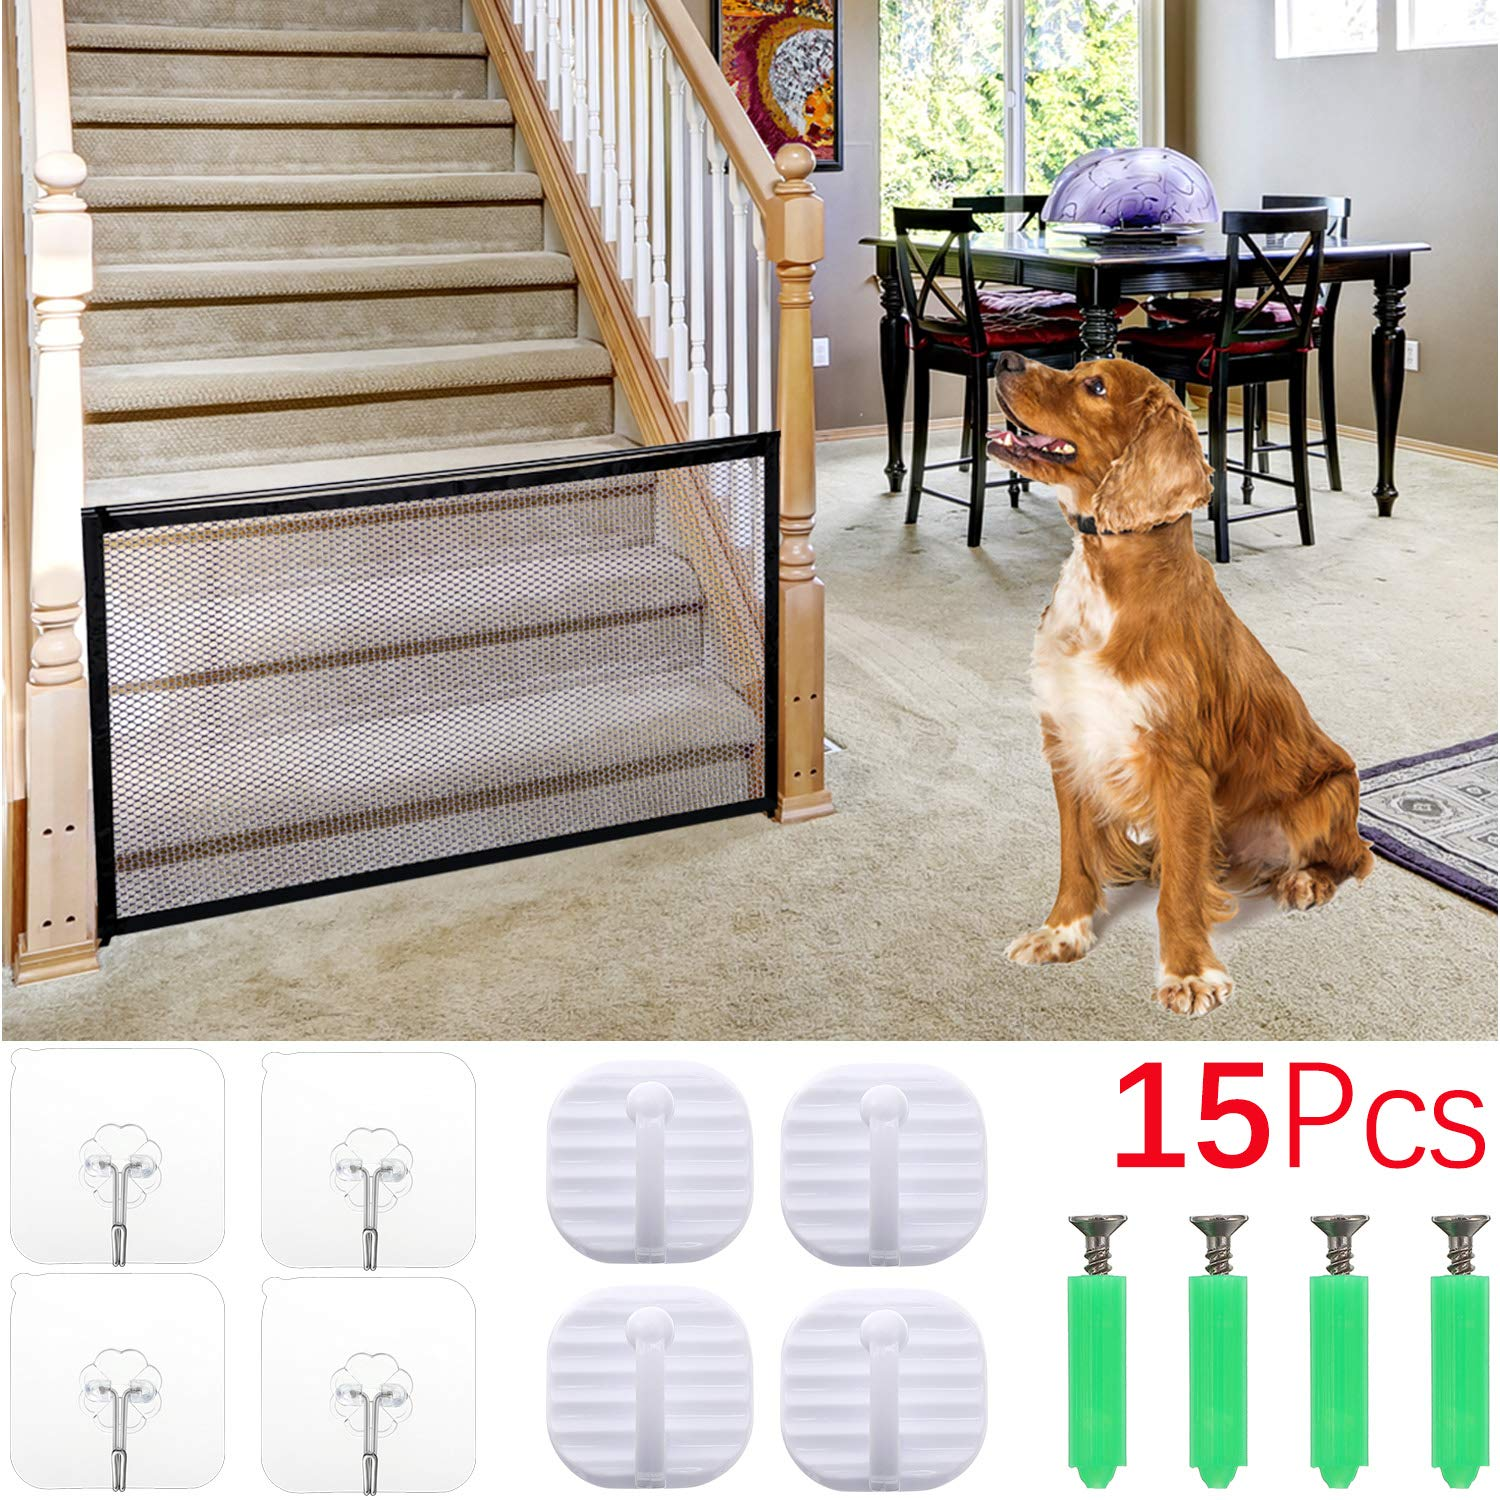 Safe Rail Net for Kids//Pet//Toy Balcony Brown Sturdy Mesh Fabric Material Patios and Railing Stairs Netting 9.8 ft White Color Aitone Child Safety Net